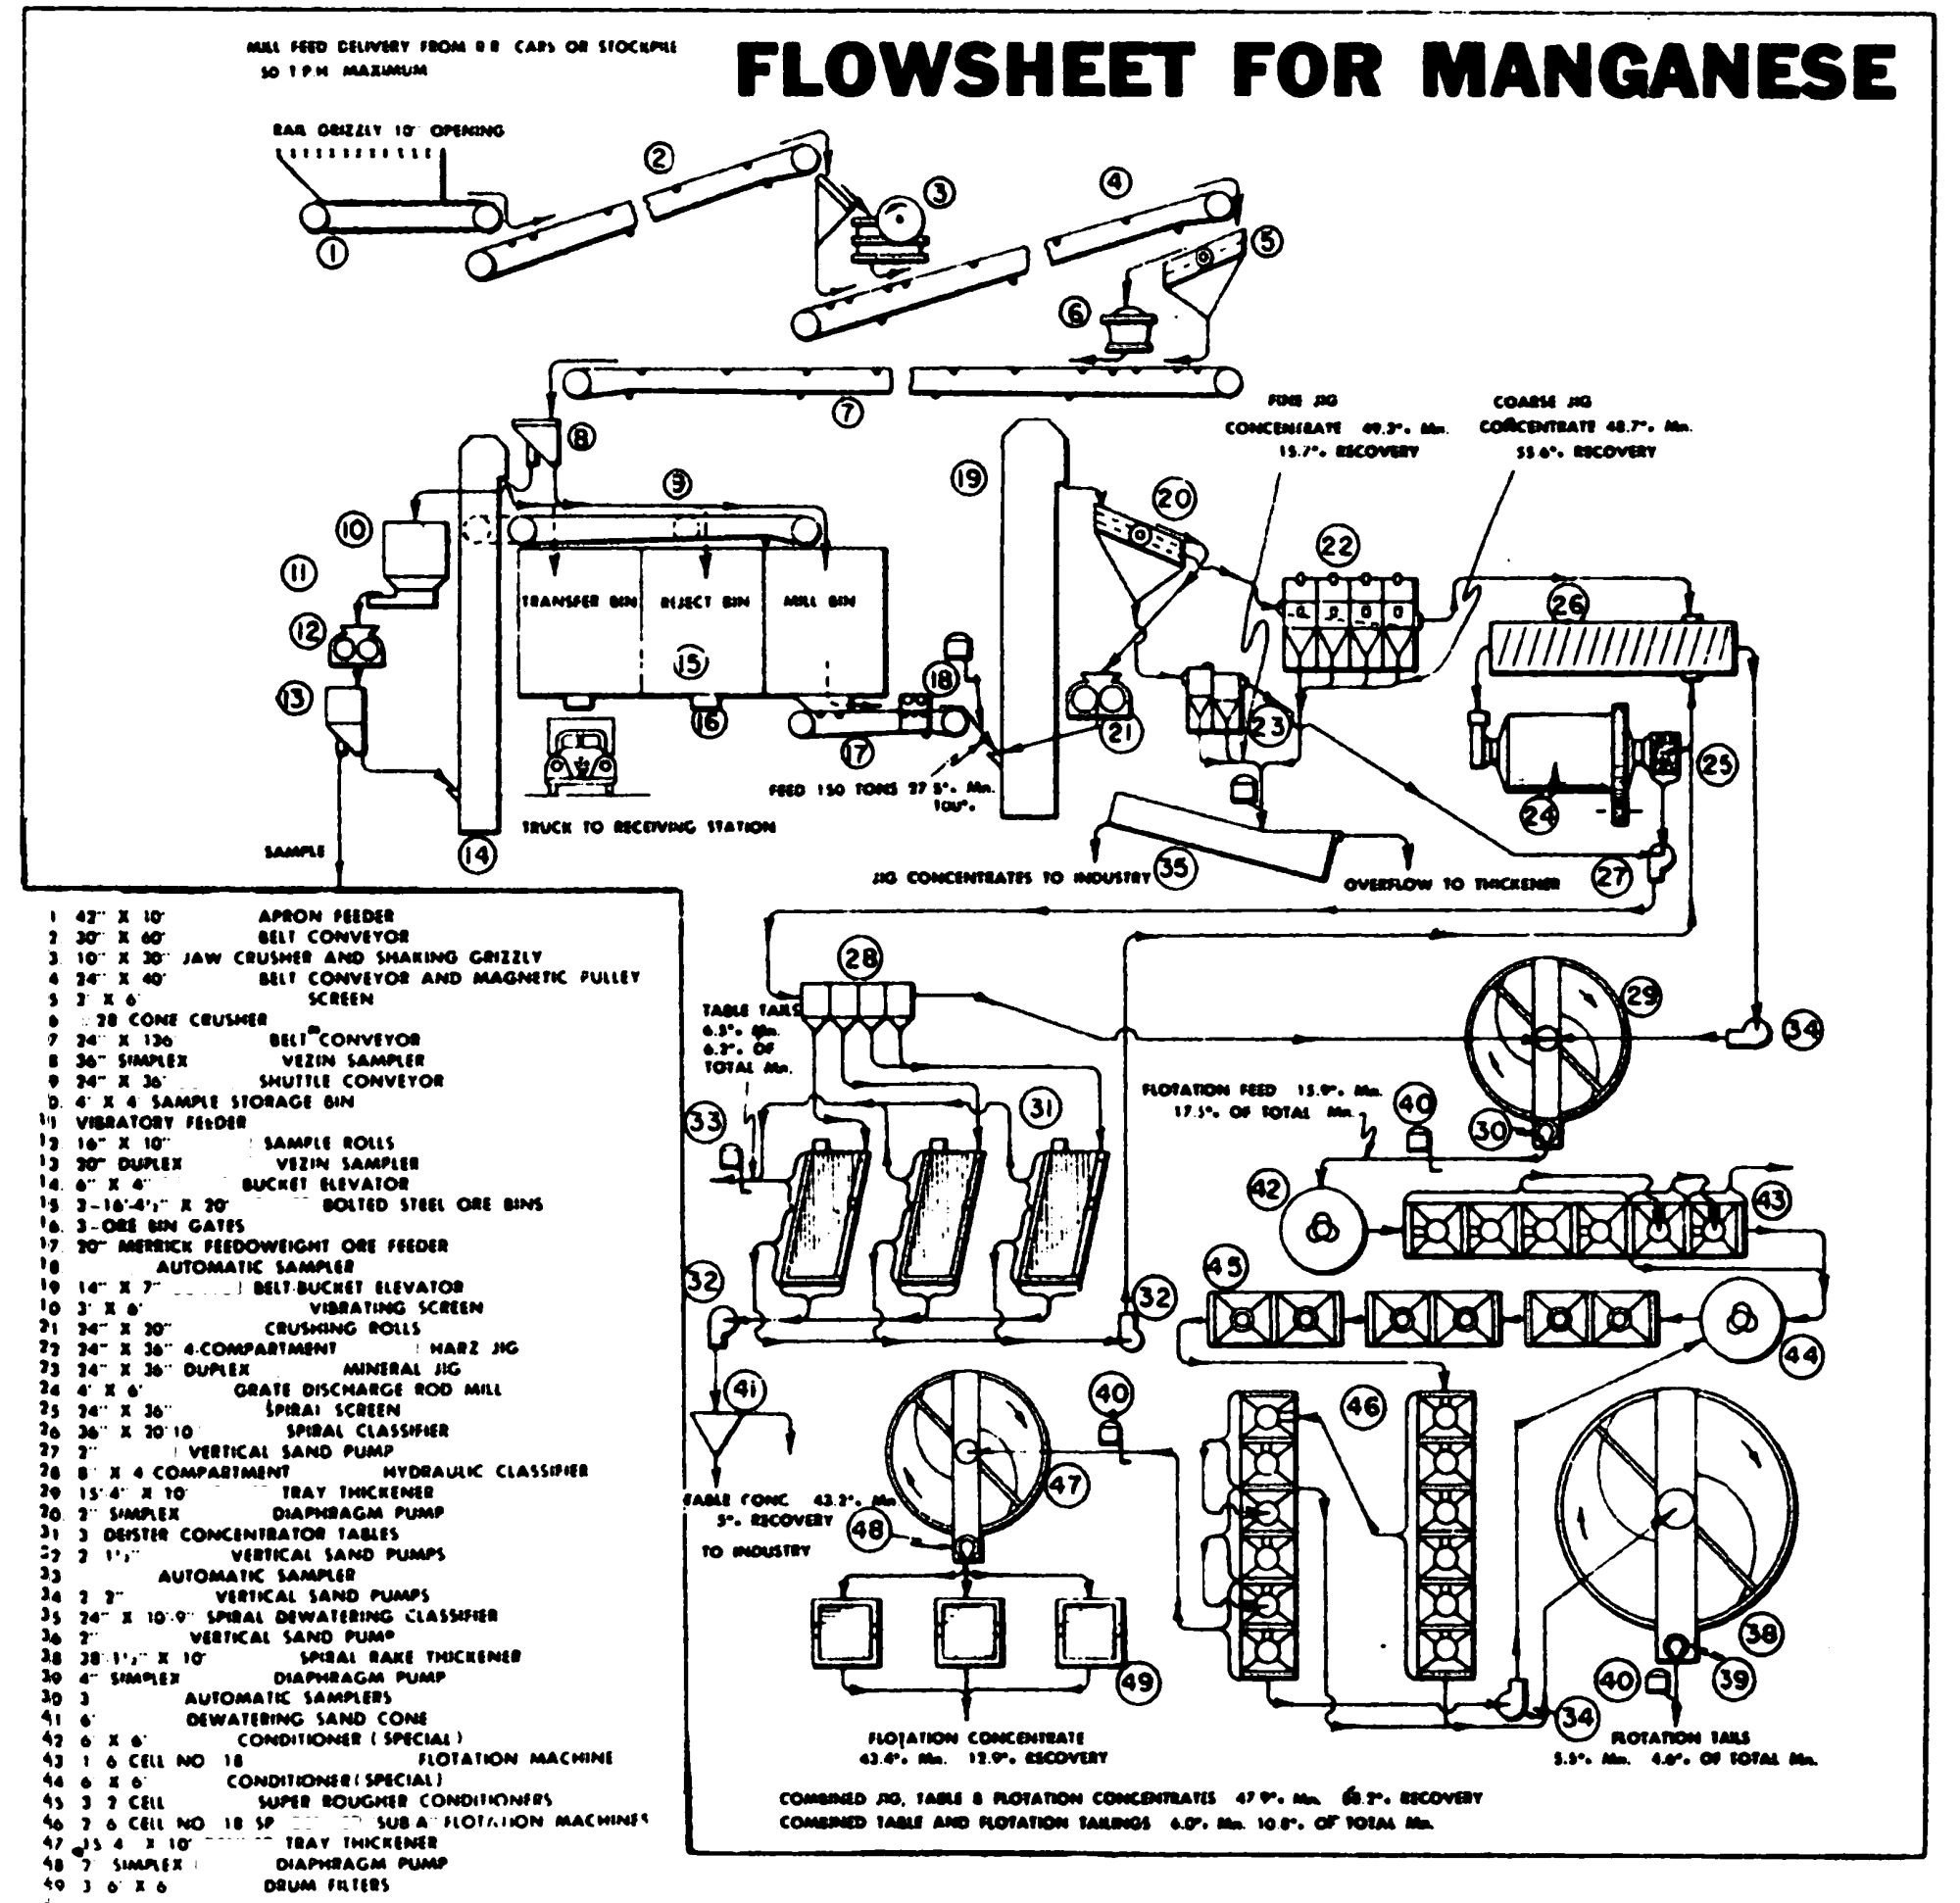 Flowsheet Of Manganese Ore Beneficiation Process Plant